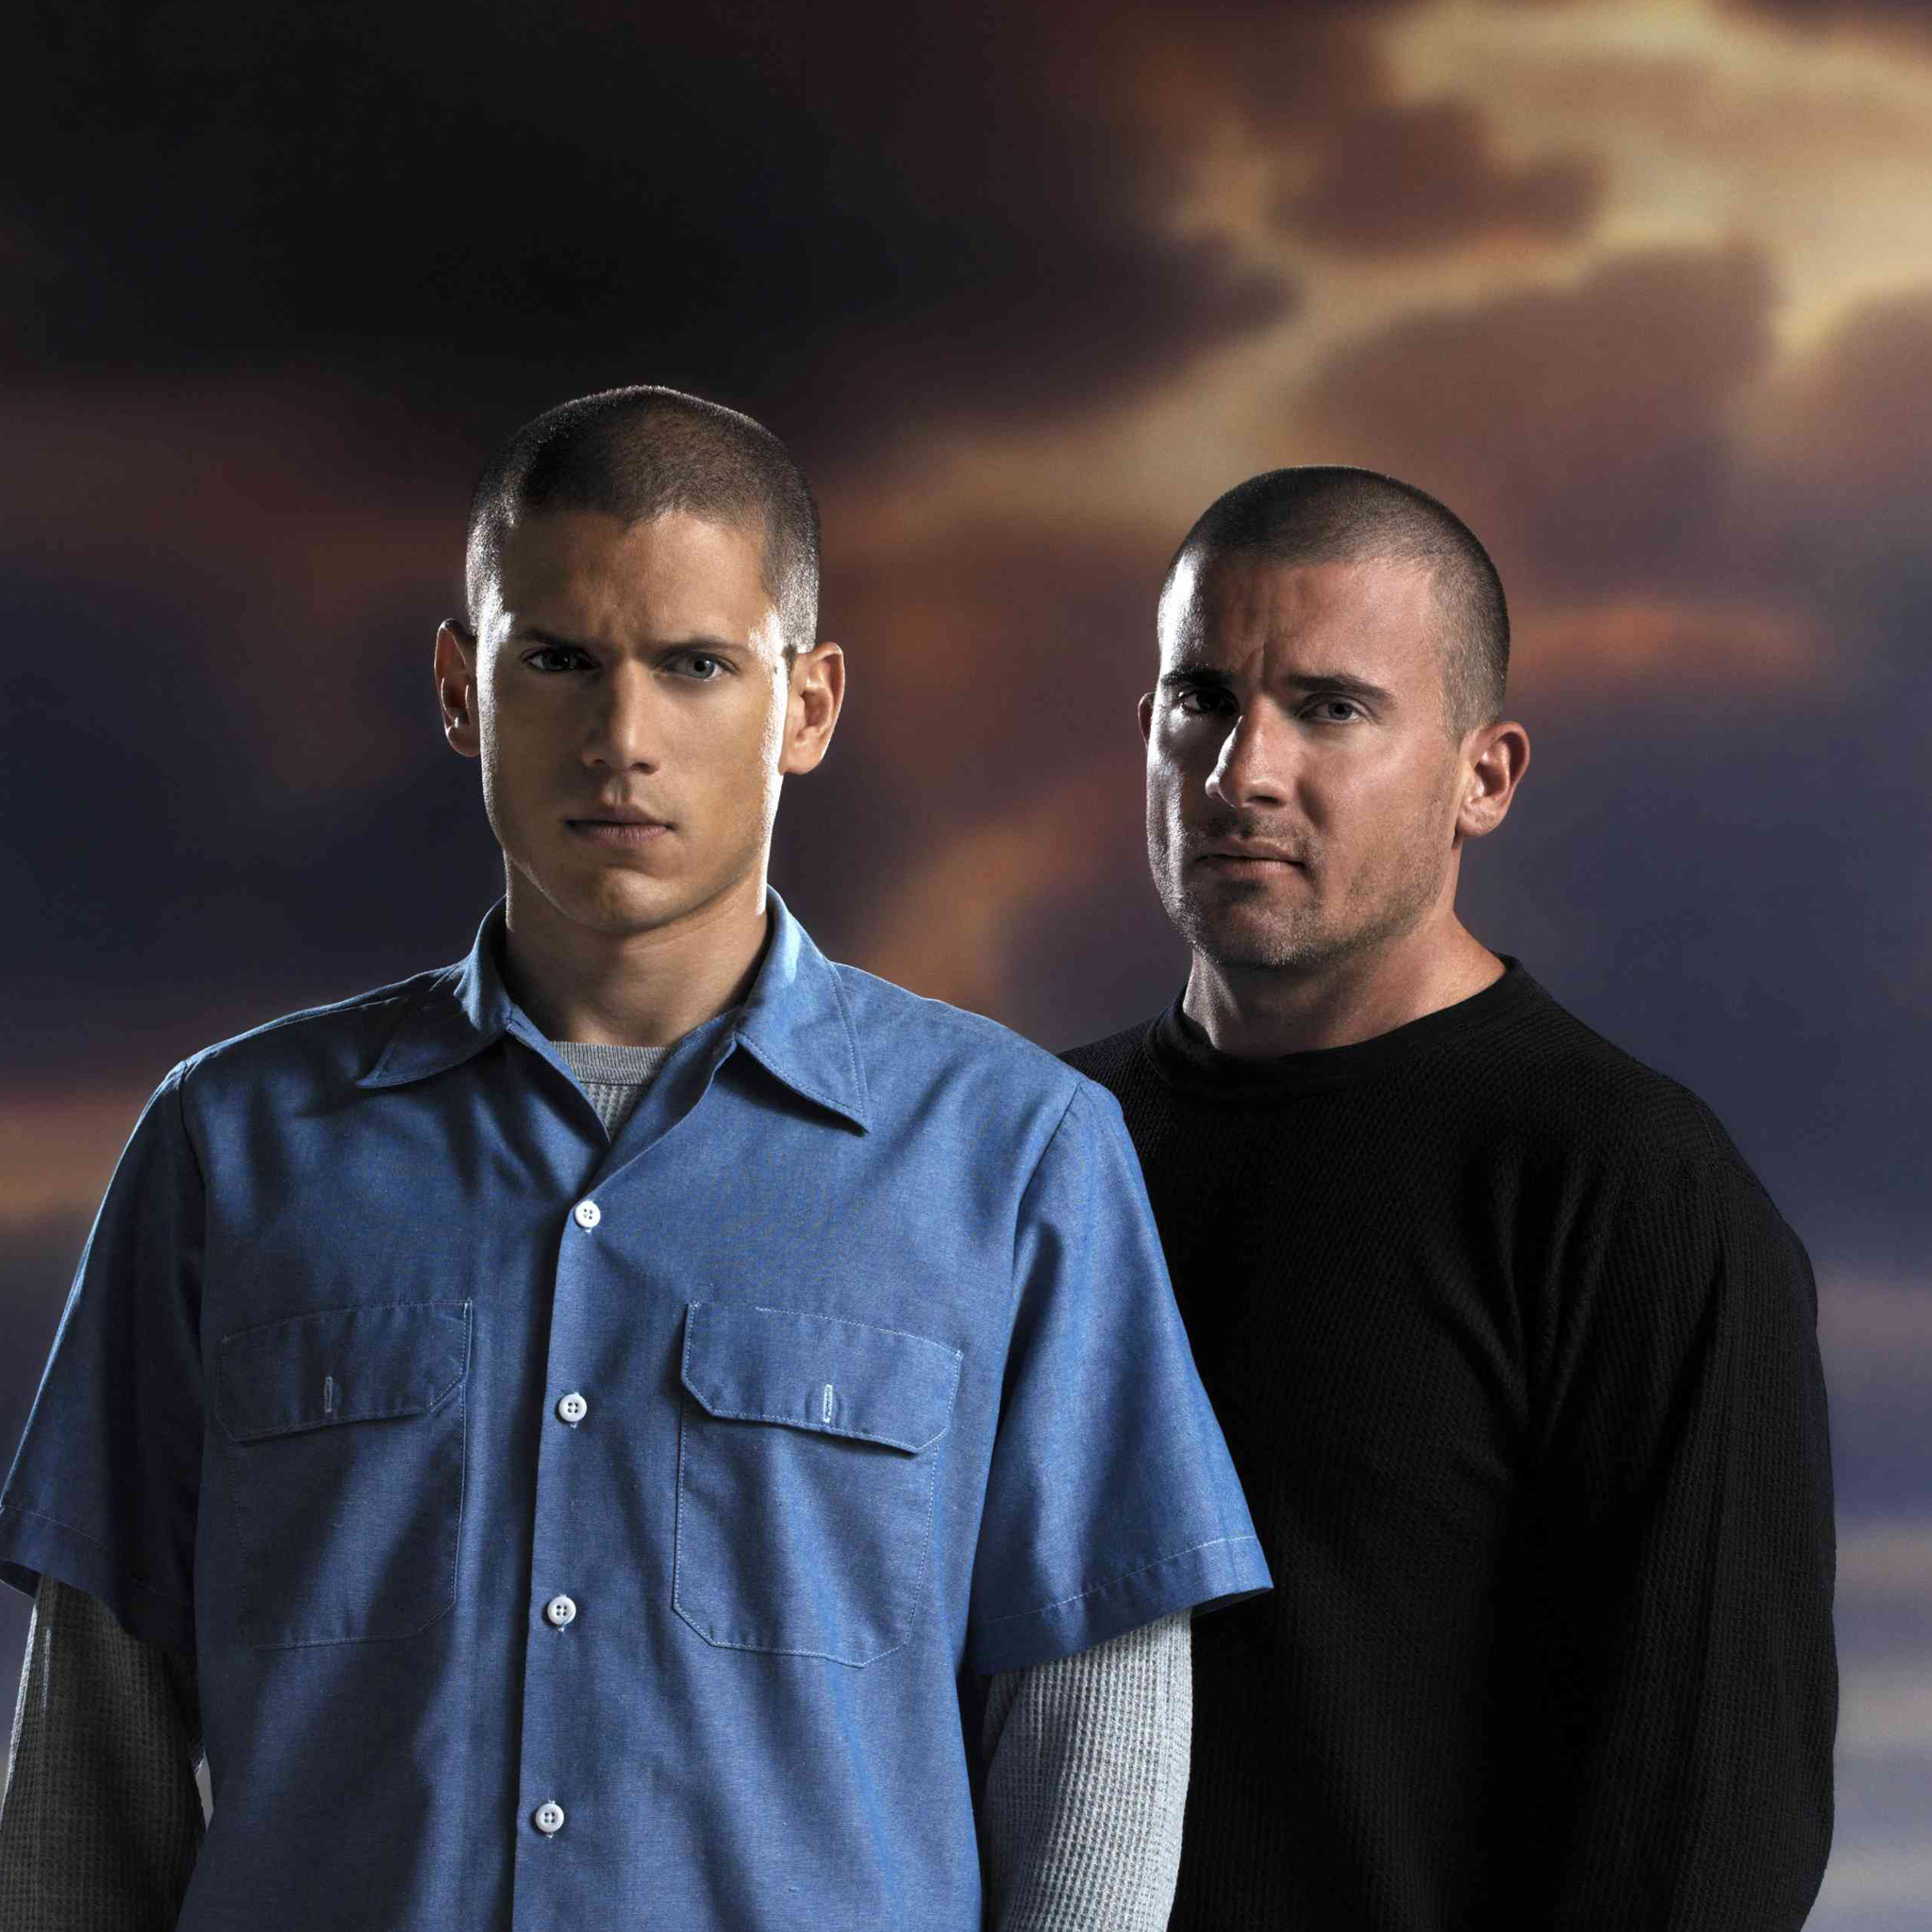 Prison Break 3Wallpapers ipad Prison Break   iPad